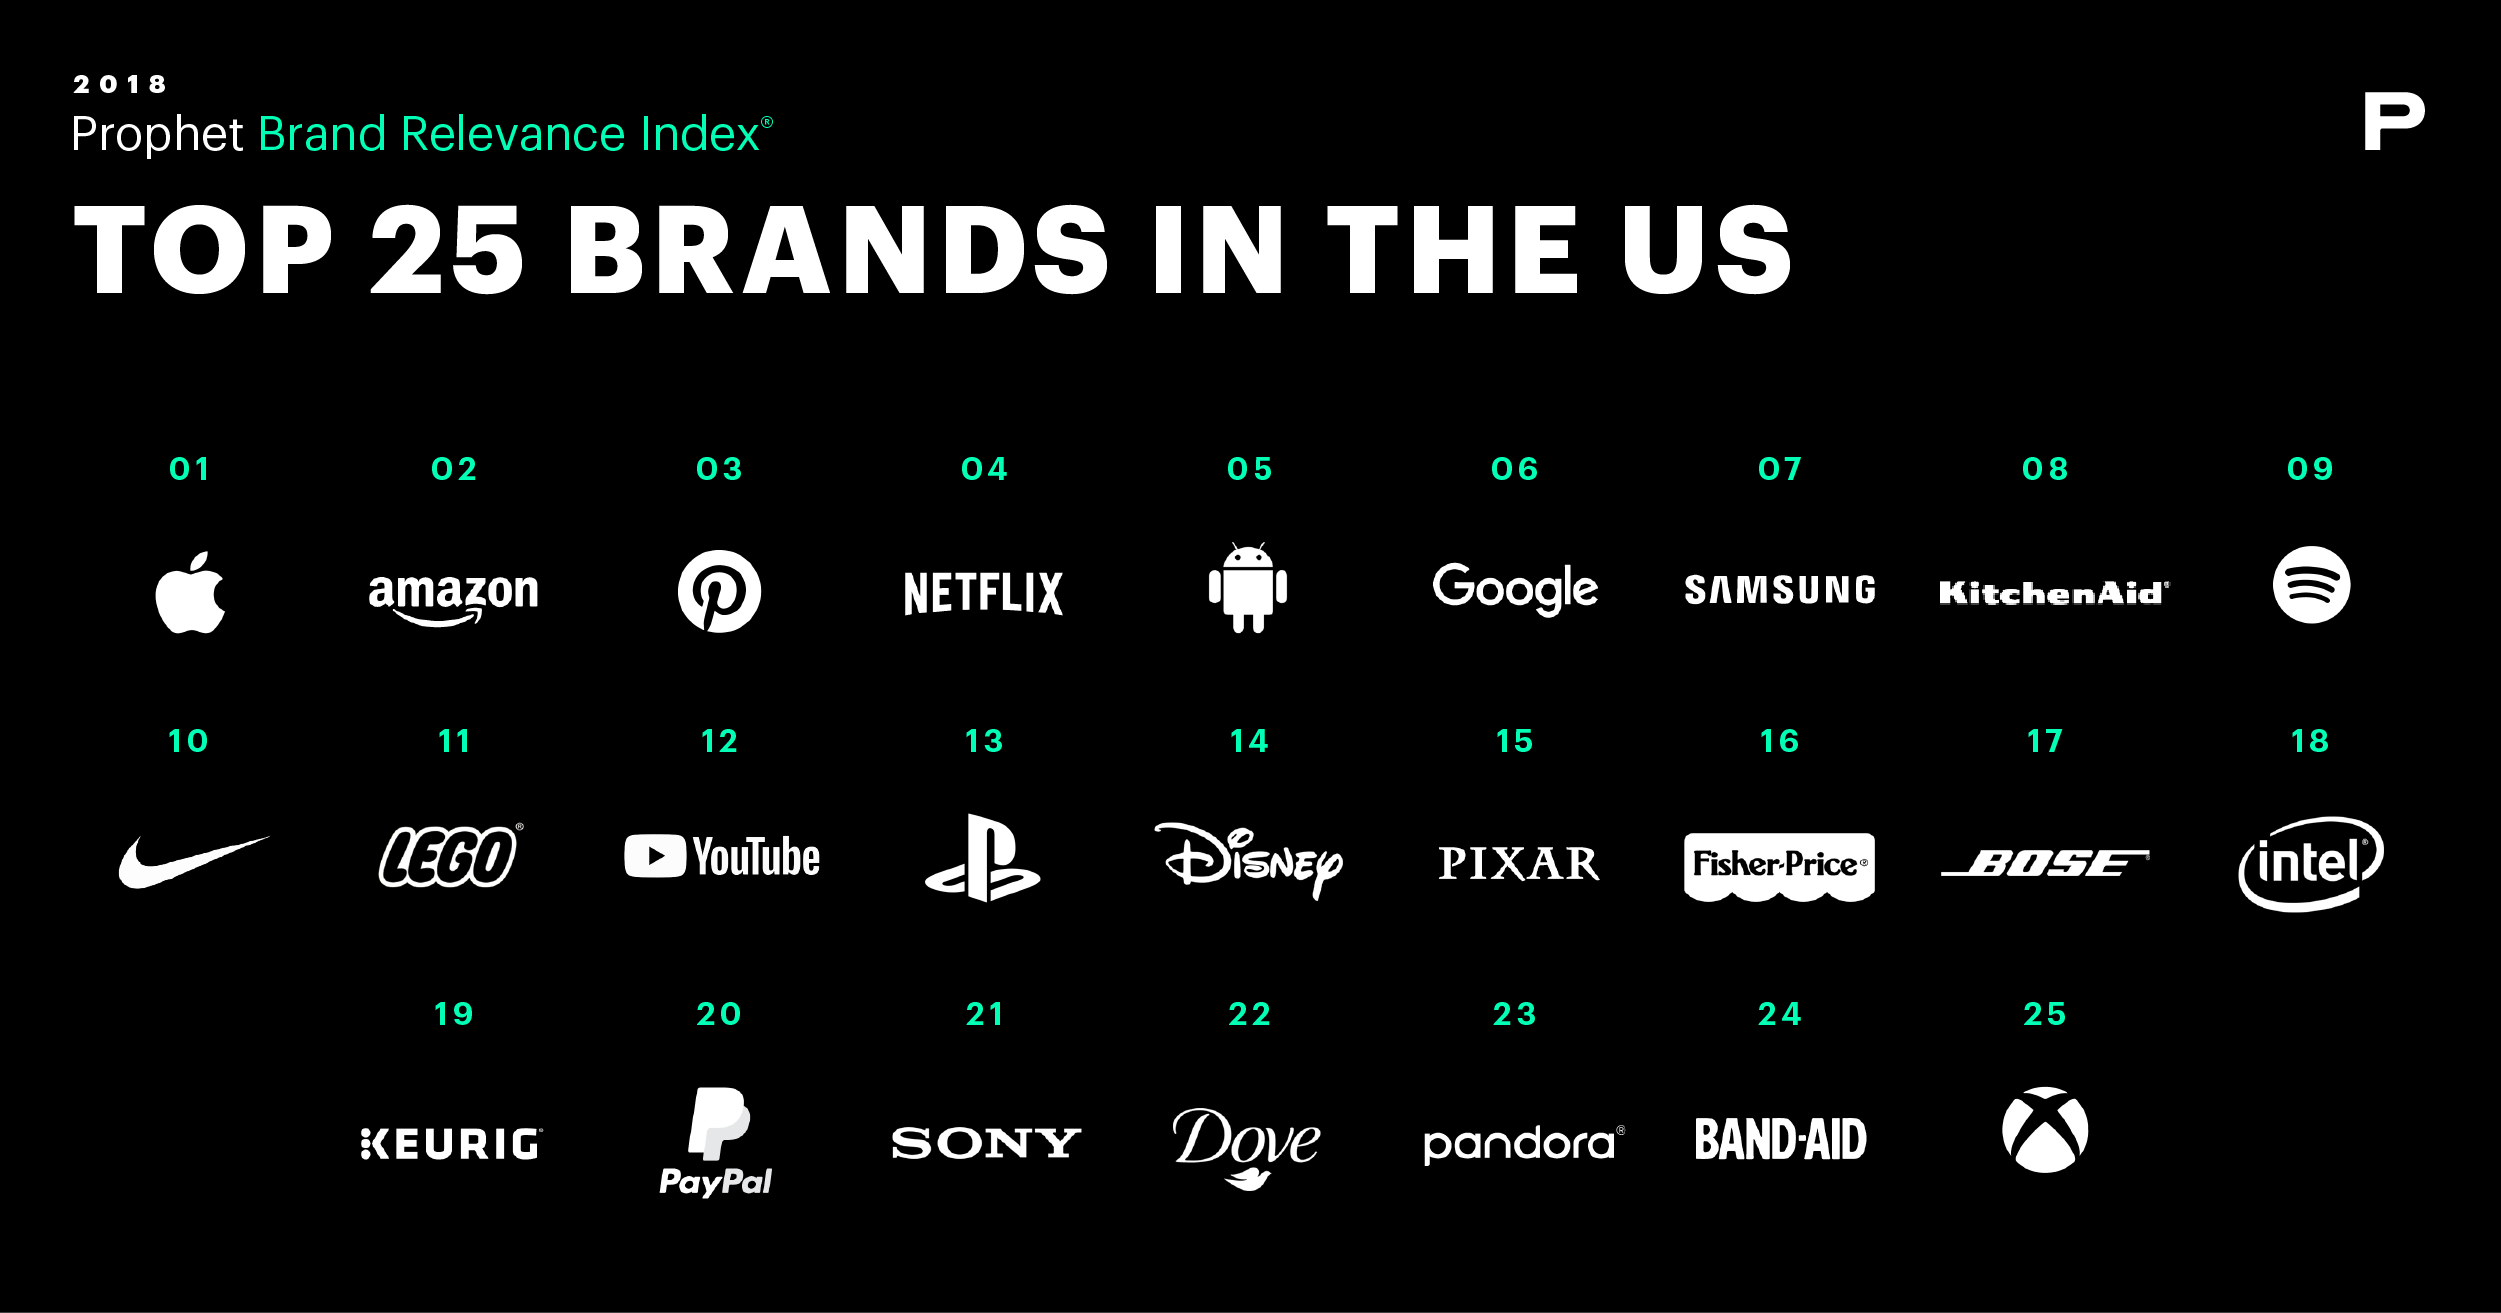 Top US Brands in the 2018 Prophet Brand Relevance Index®